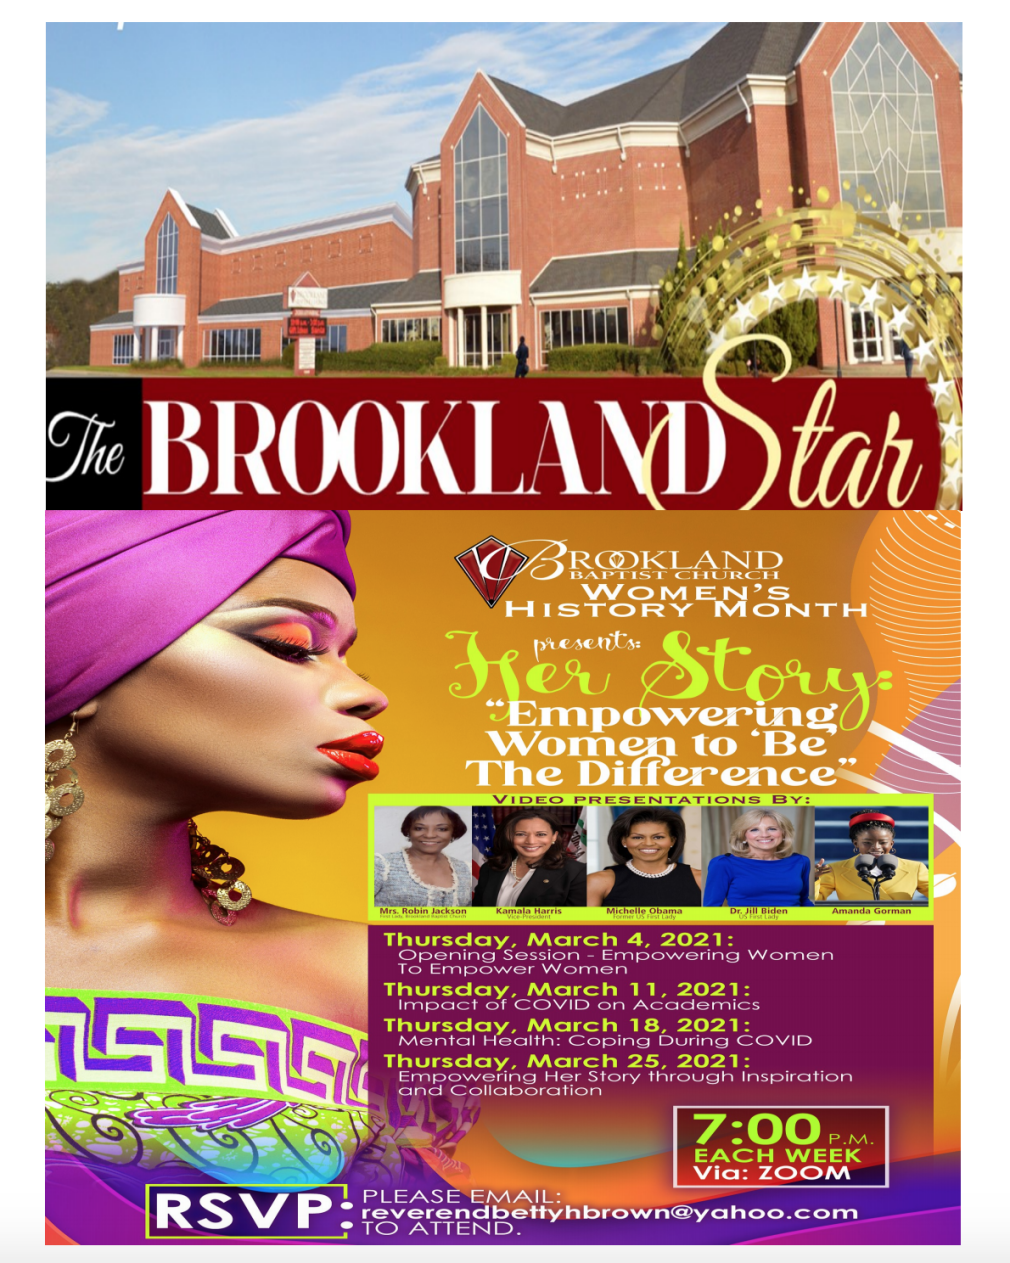 The Brookland Star March 2021 Edition